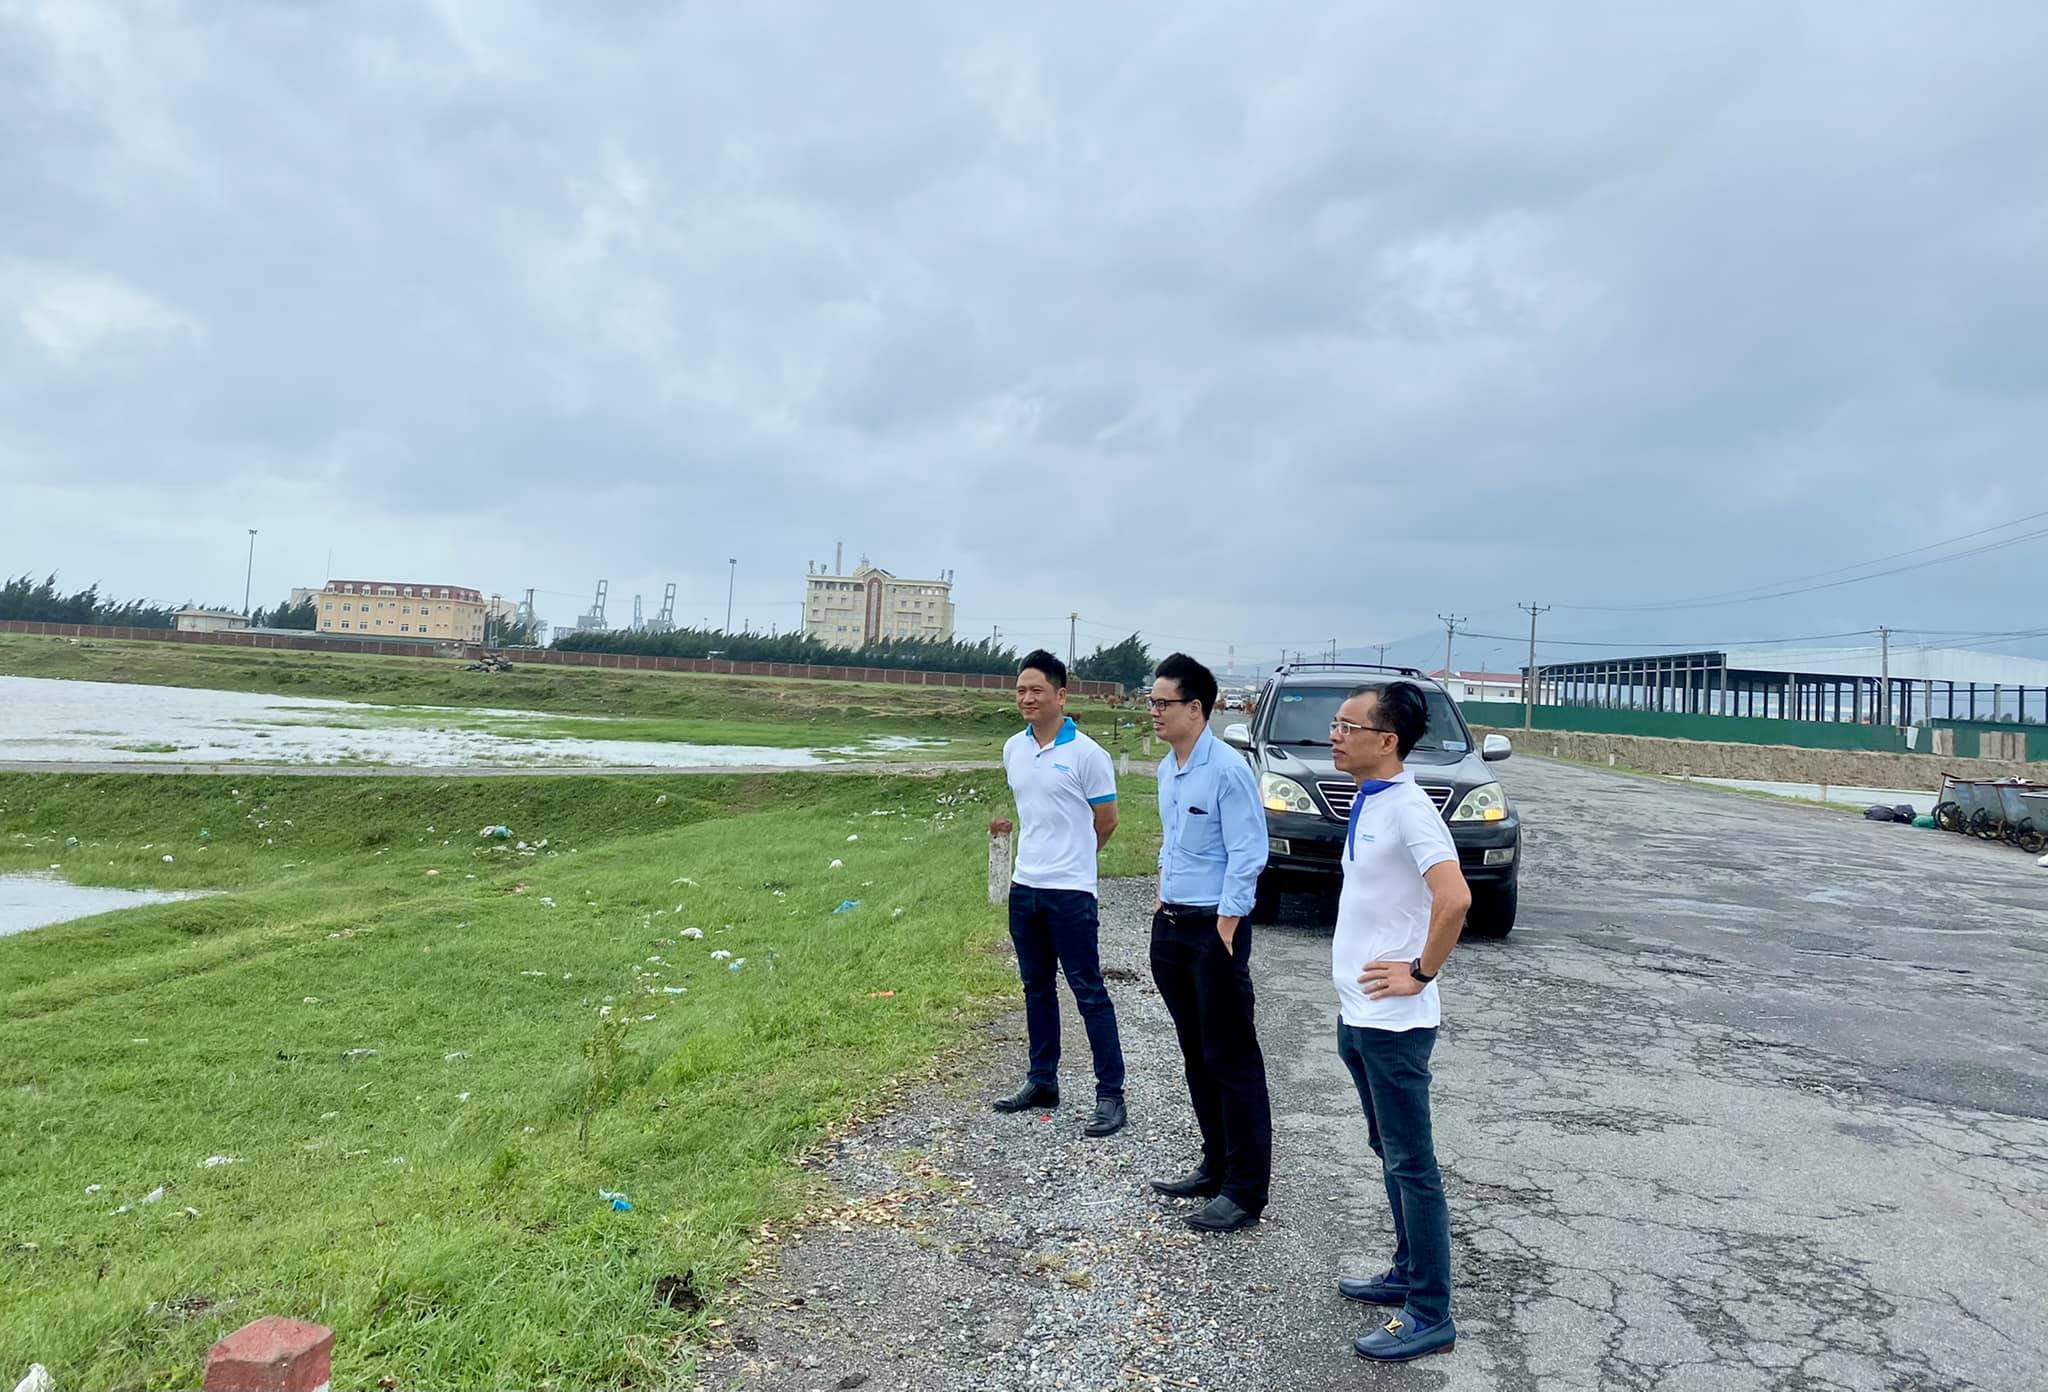 Meeting for developing logistics area of Son Duong, Ha Tinh Province